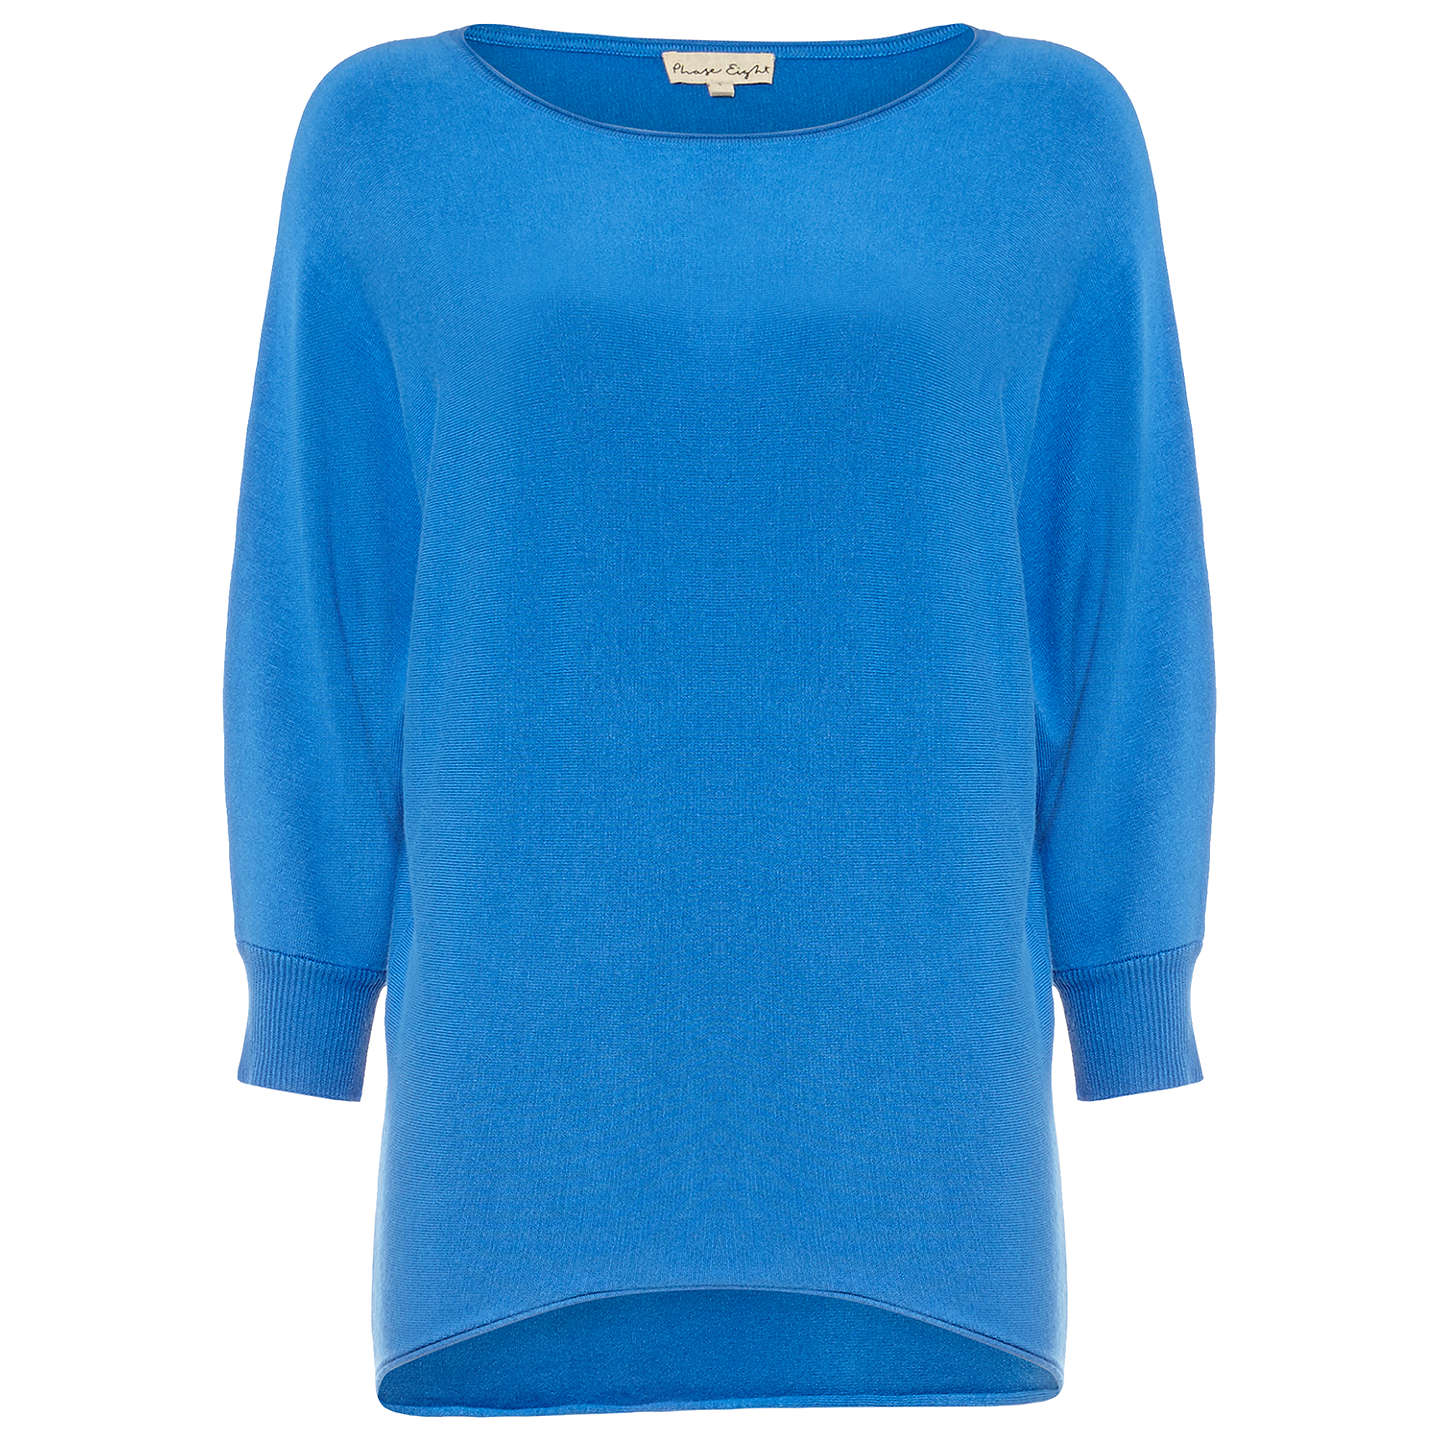 BuyPhase Eight Becca Smart Batwing Jumper, Cornflower, XS Online at johnlewis.com